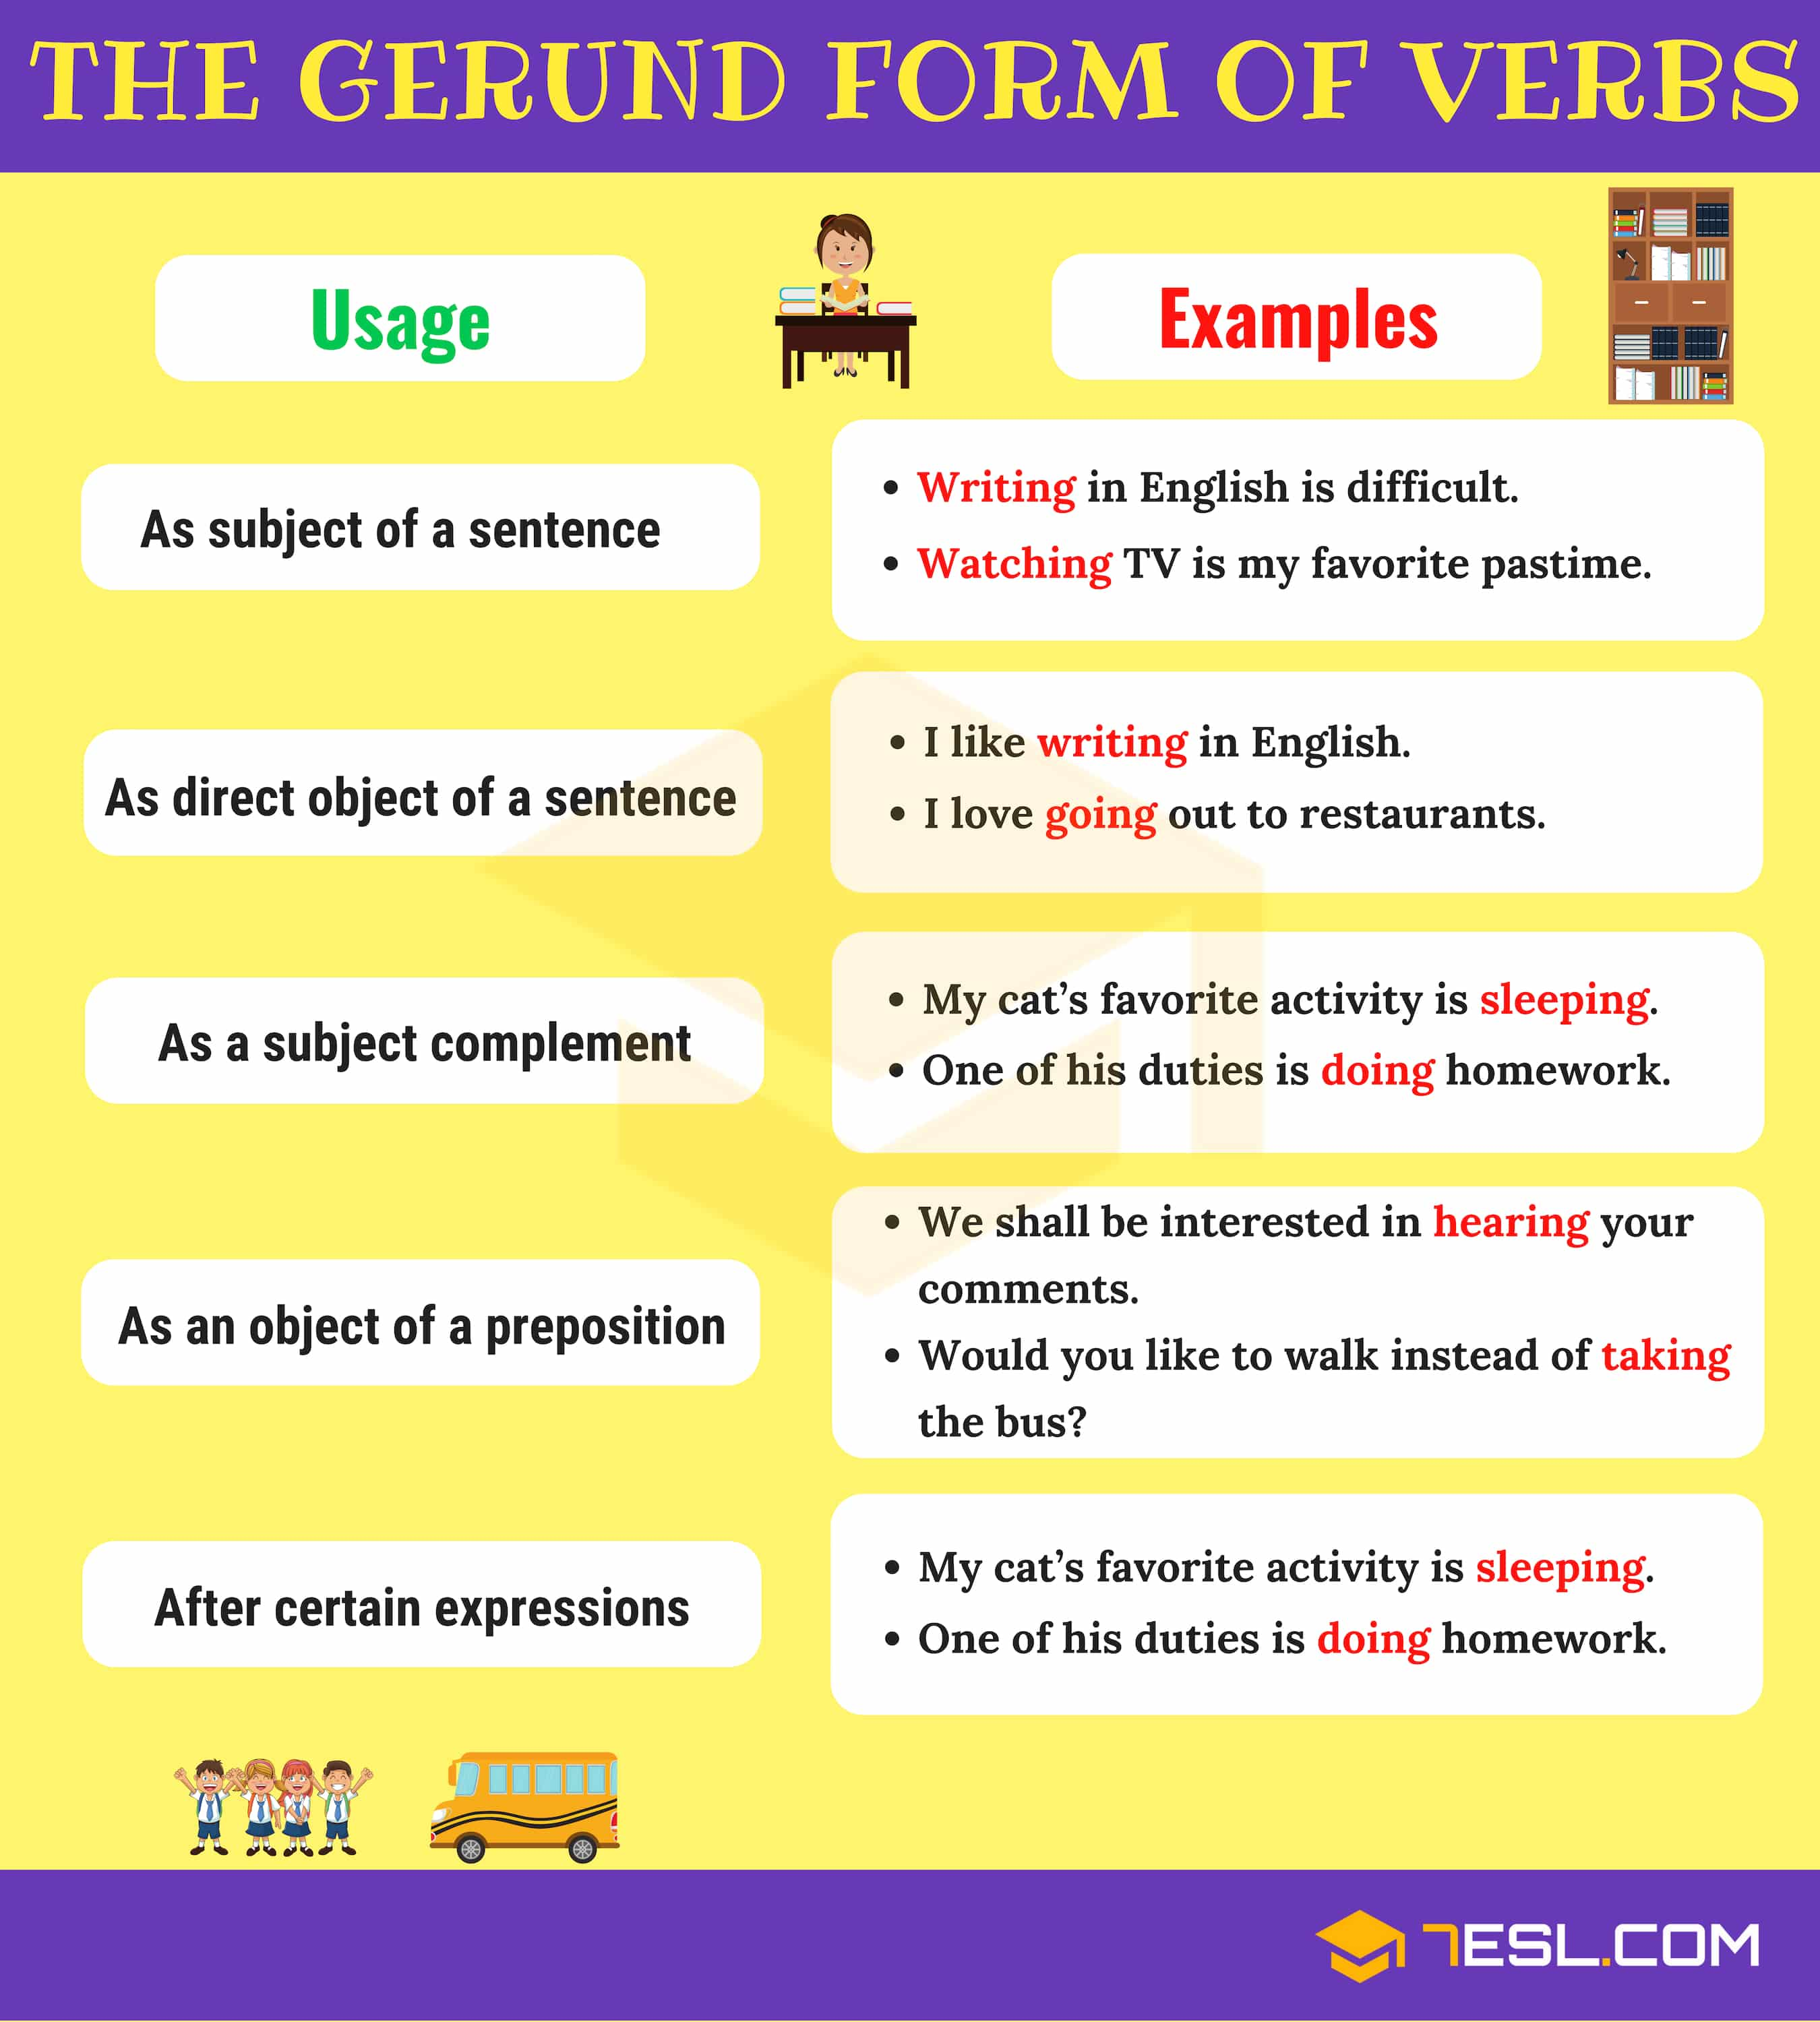 VERBS: What is a Verb? Useful Rules, Types & Examples - 7 E S L